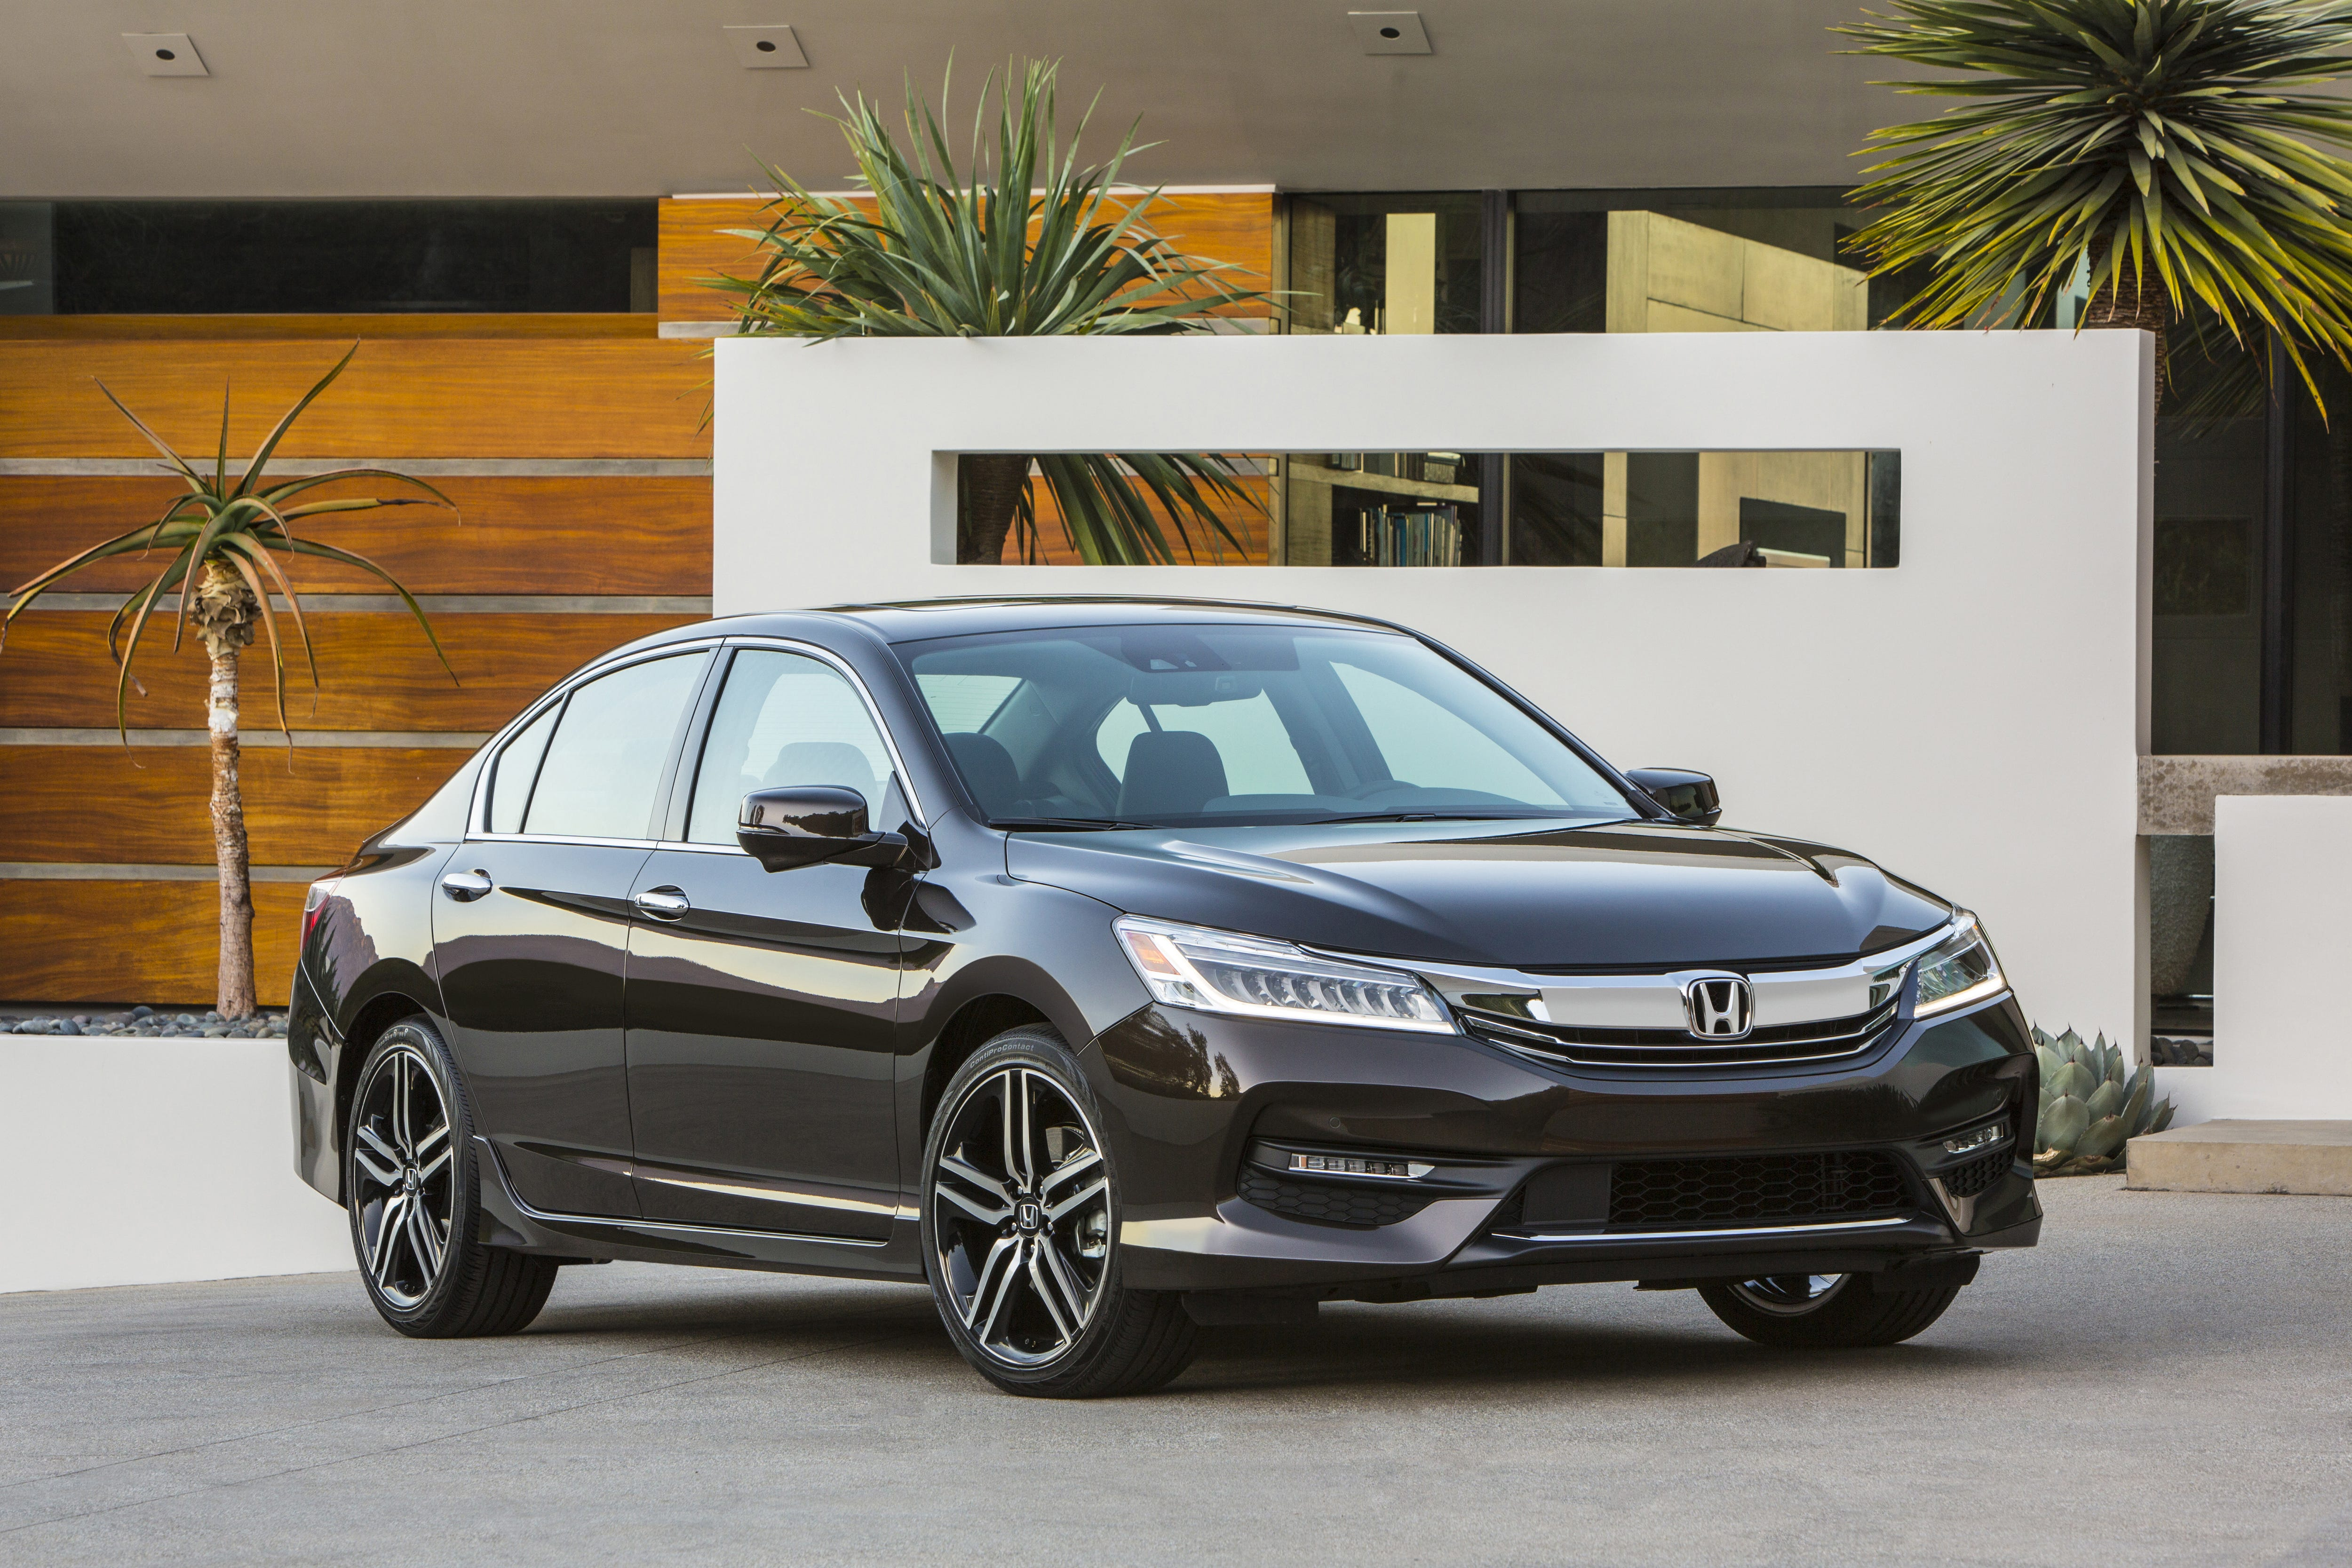 Honda recalling 1.5M Accord cars to prevent potential engine fires